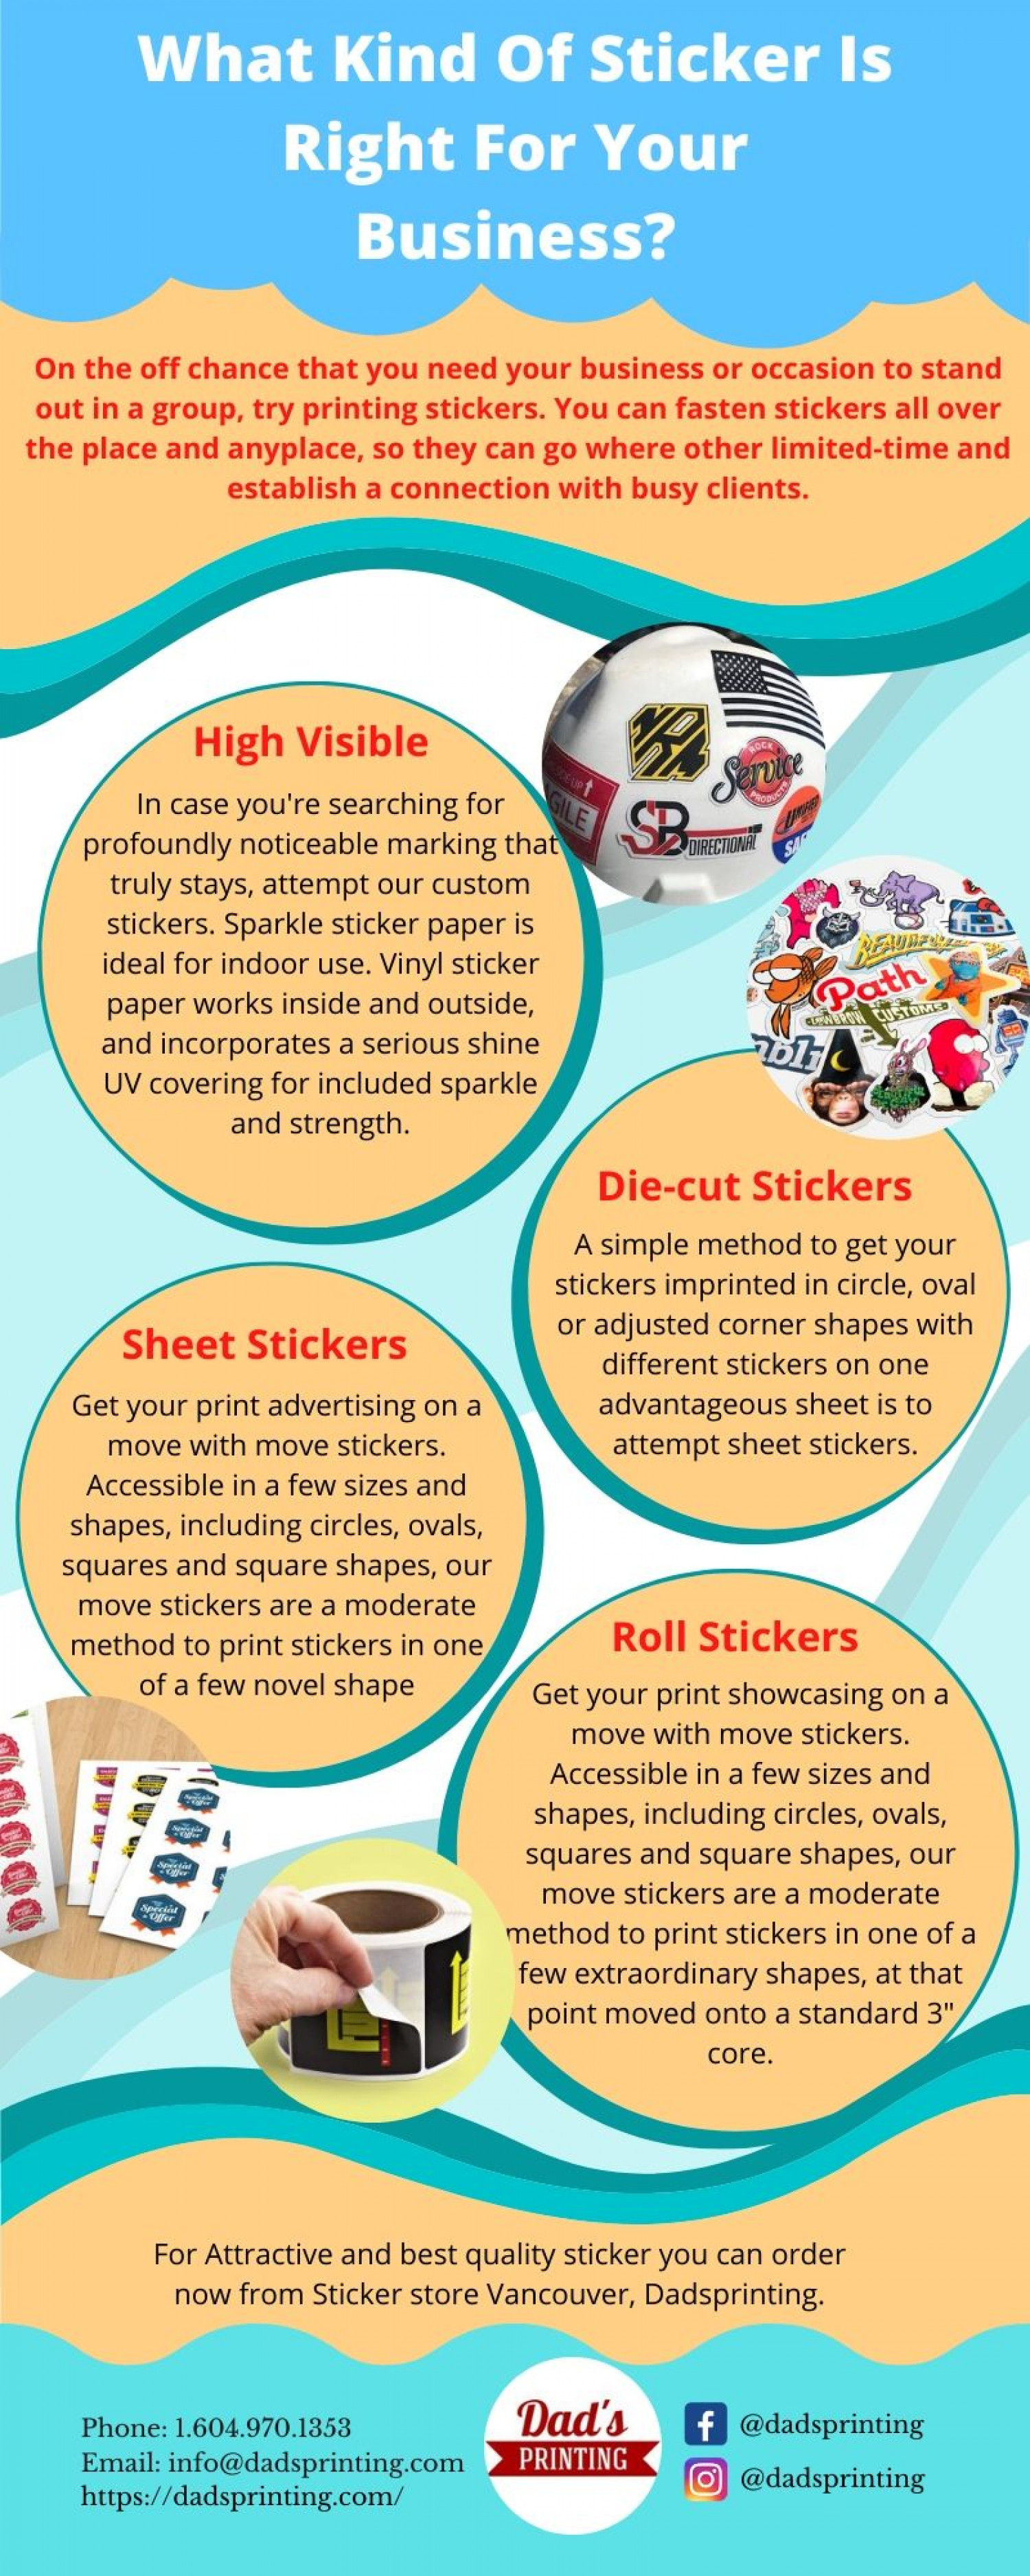 What kind of sticker is right for your business? Infographic